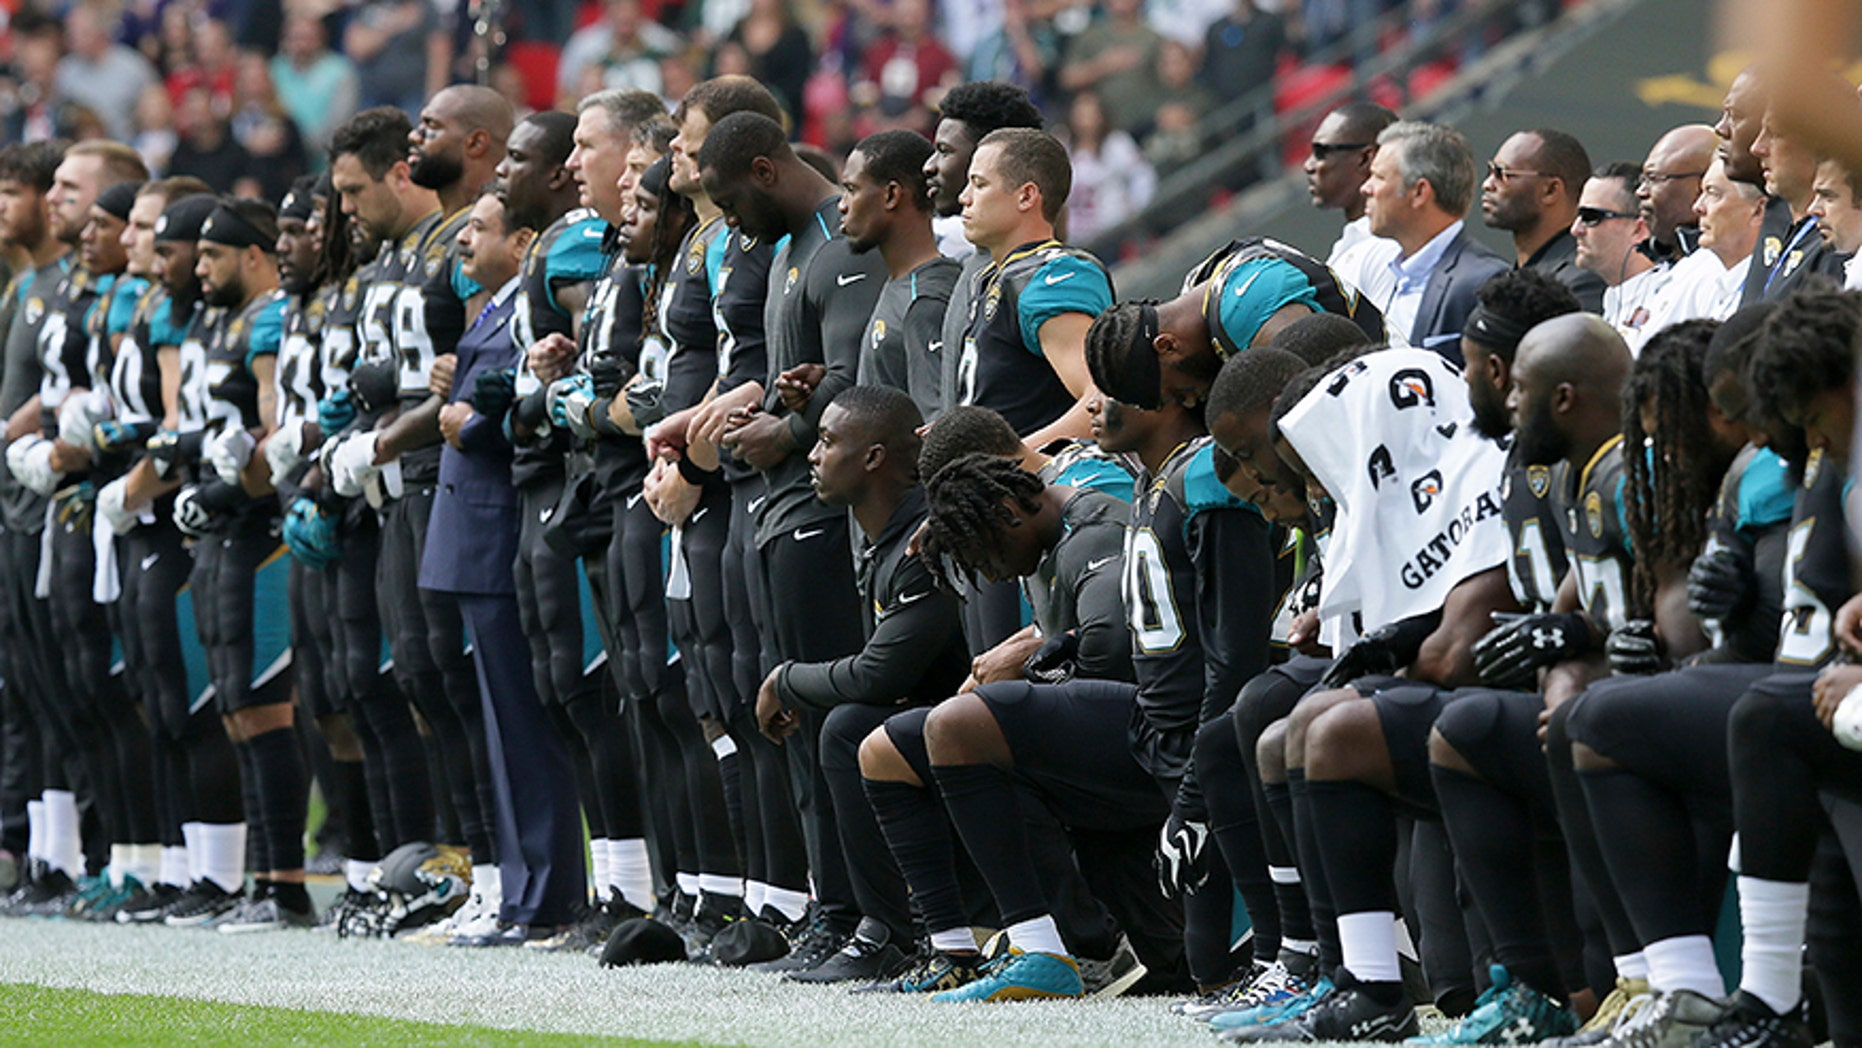 The Jacksonville Jaguars have apologized to military leaders for demonstrating during the national anthem in London last month.